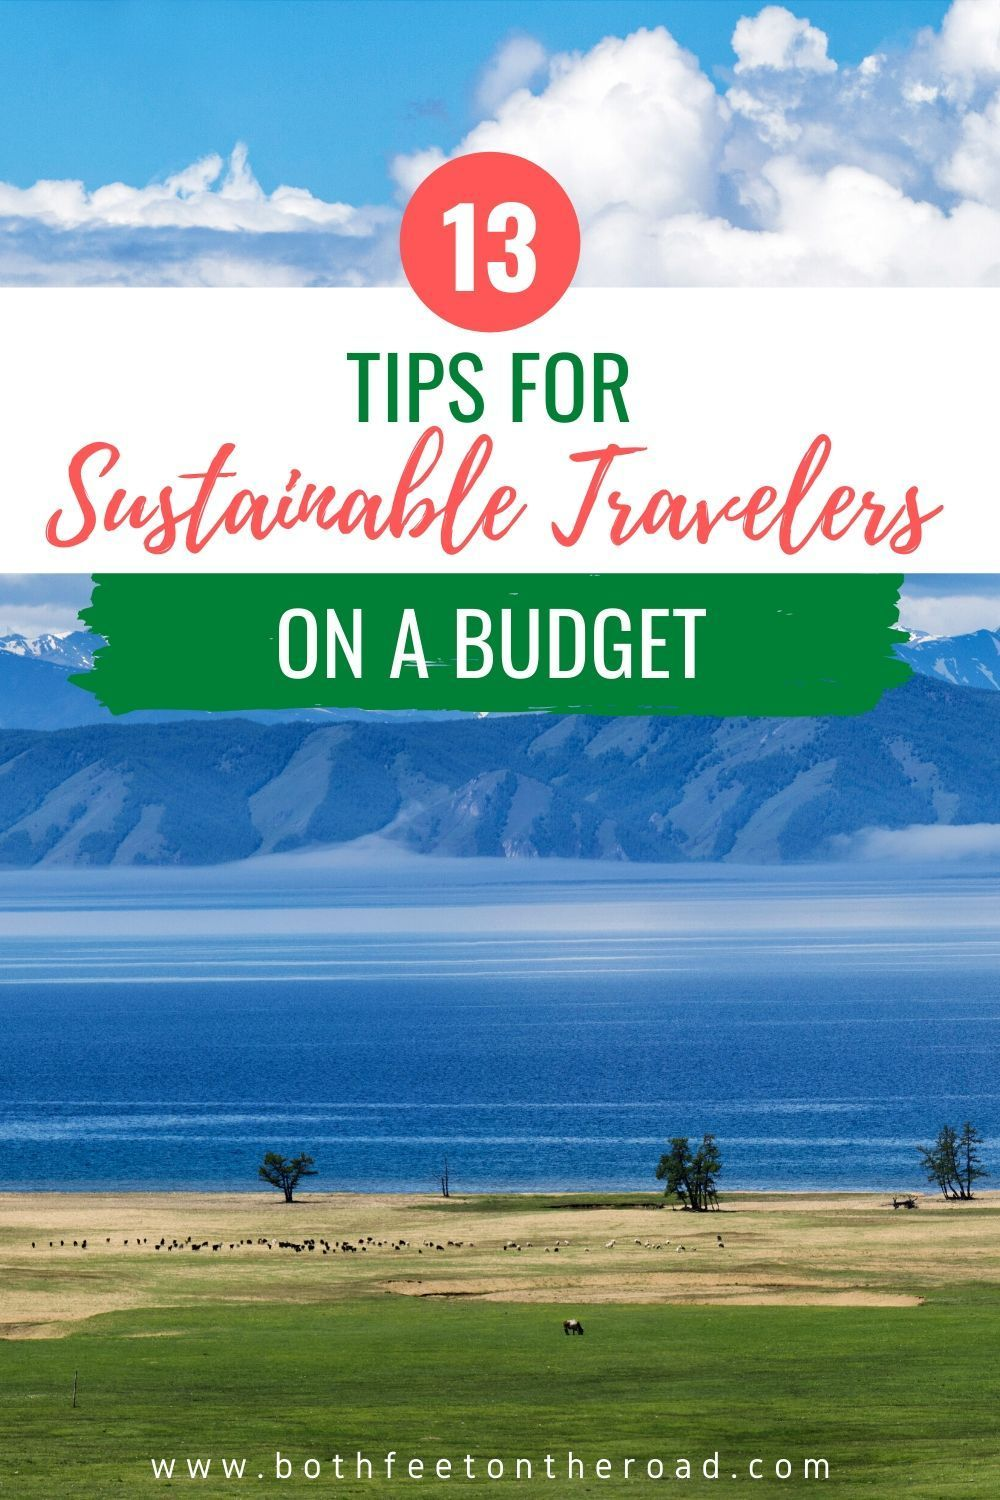 These 13 tips will help you travel sustainable while also saving money, for the eco-friendly travelers on a budget! #sustainabletraveler #responsibletraveler #greentraveler #ecotraveler #budgettraveler #ecofriendlytraveler #ecotourism #responsibletourism #sustainabletourism